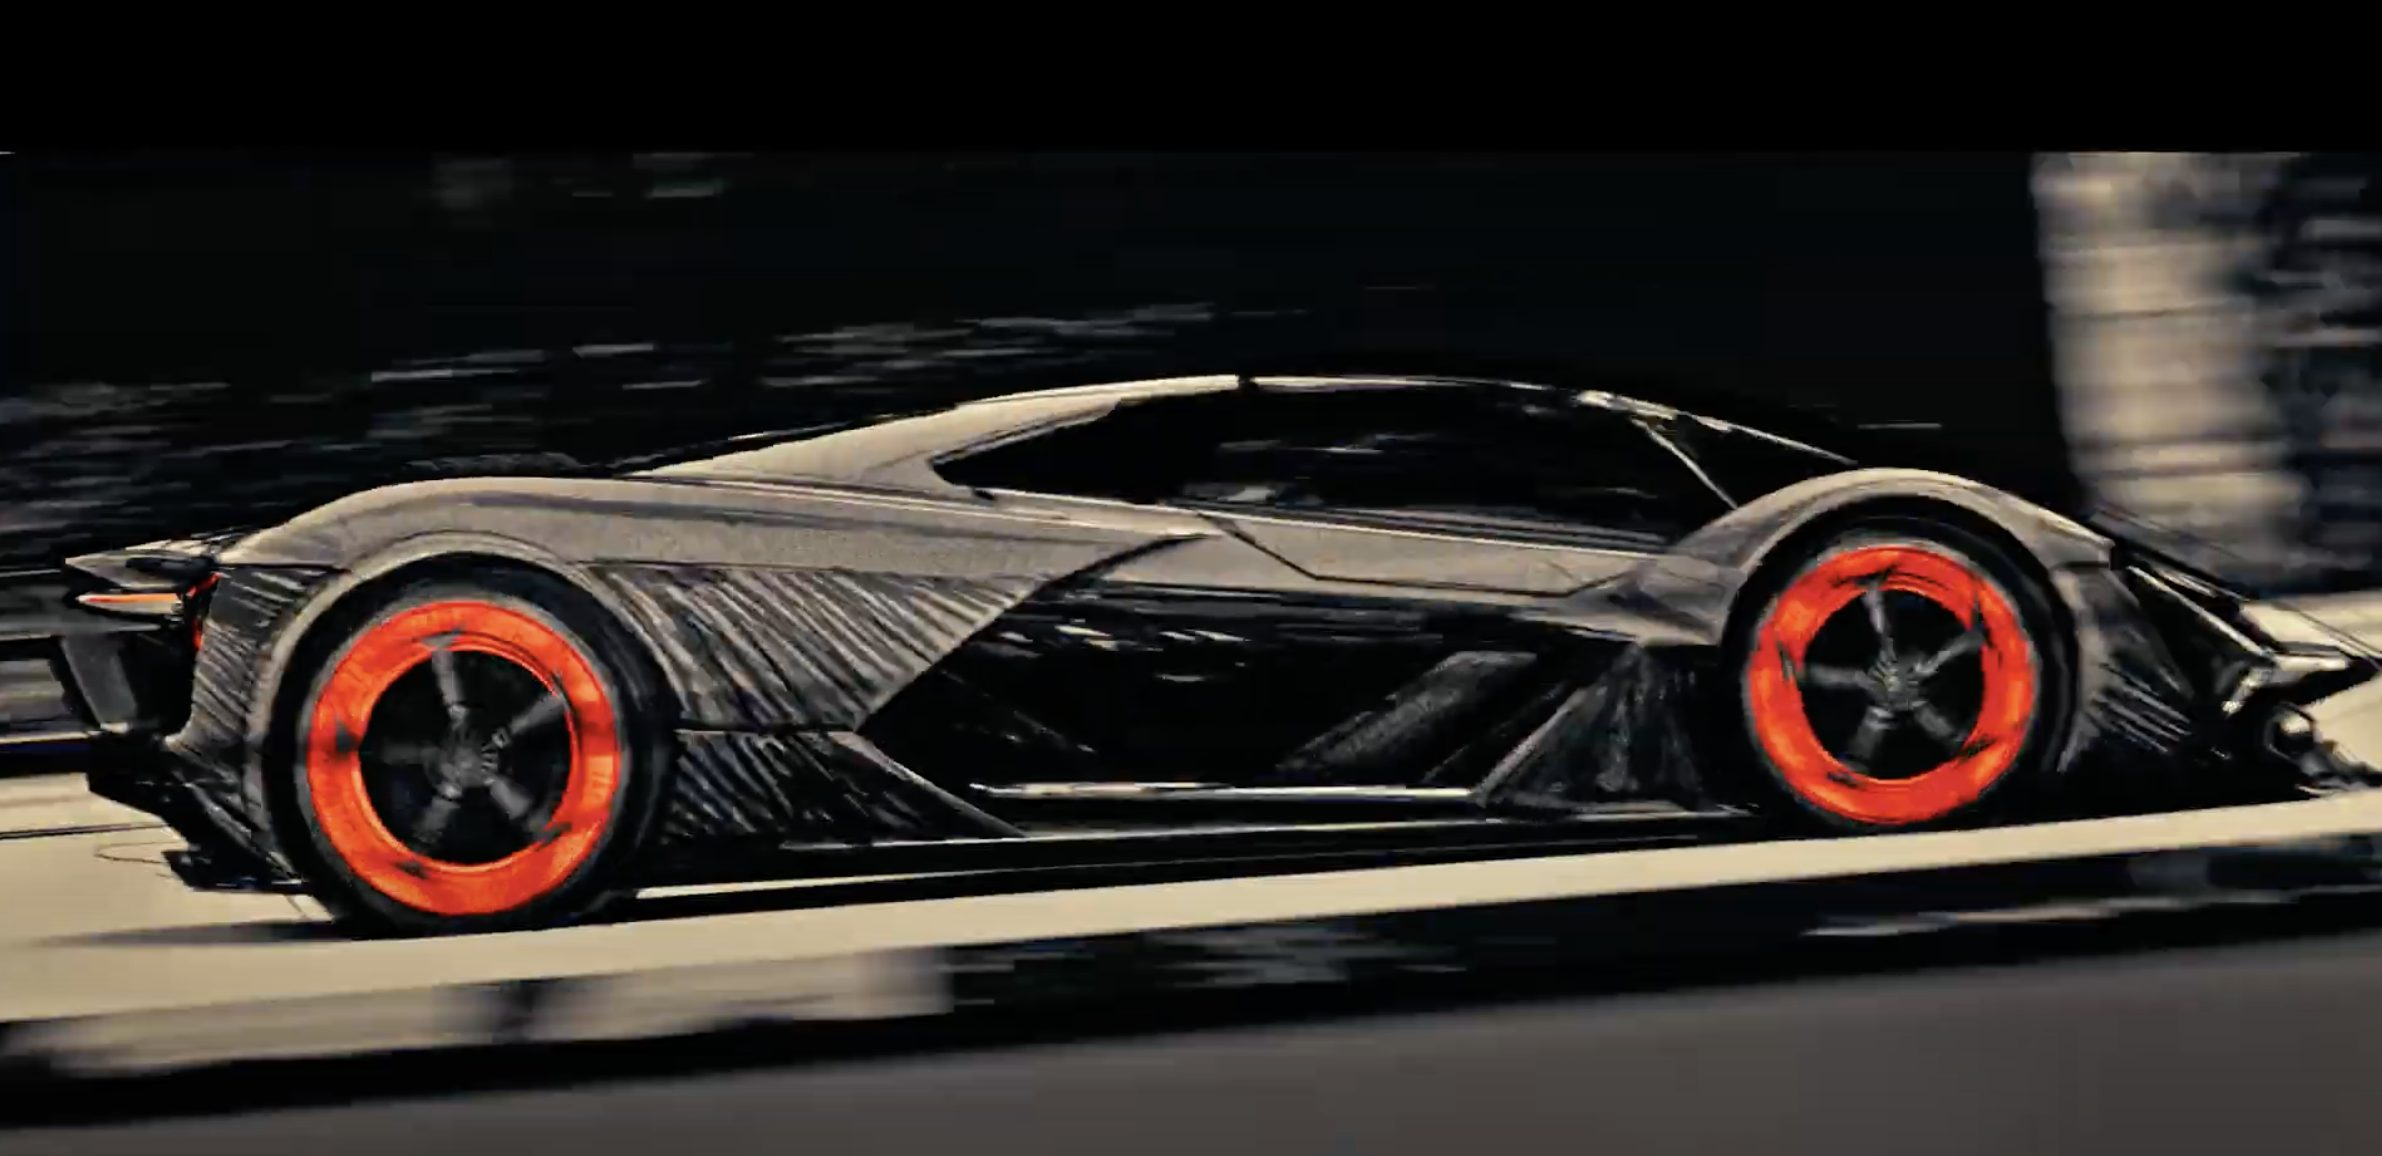 This Lamborghini Fan Made An Incredible Concept Film